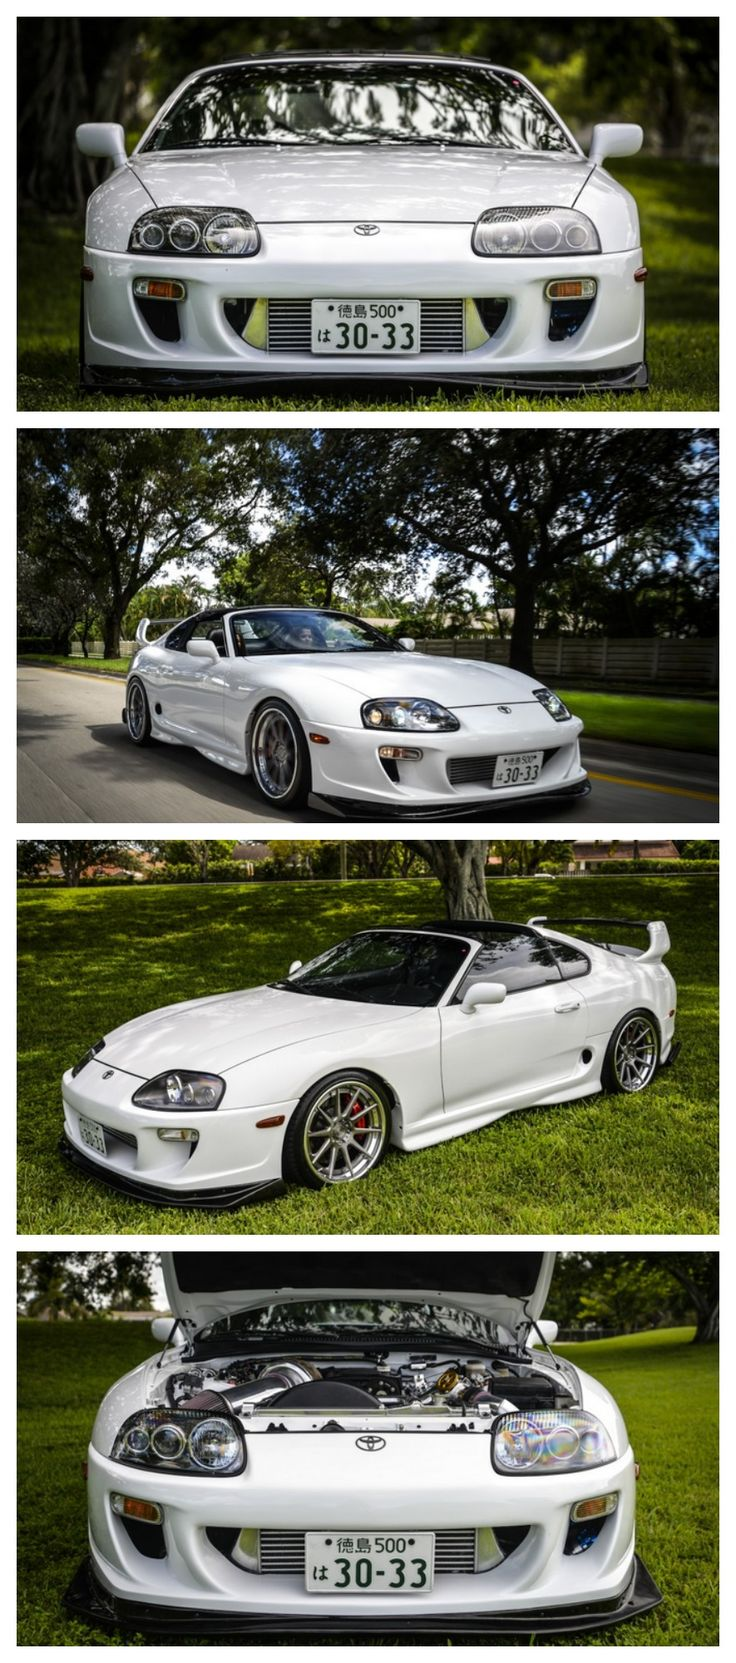 Incredible Toyota Supra Turbo Targa with a mind blowing 1050 HP #TunerTuesday